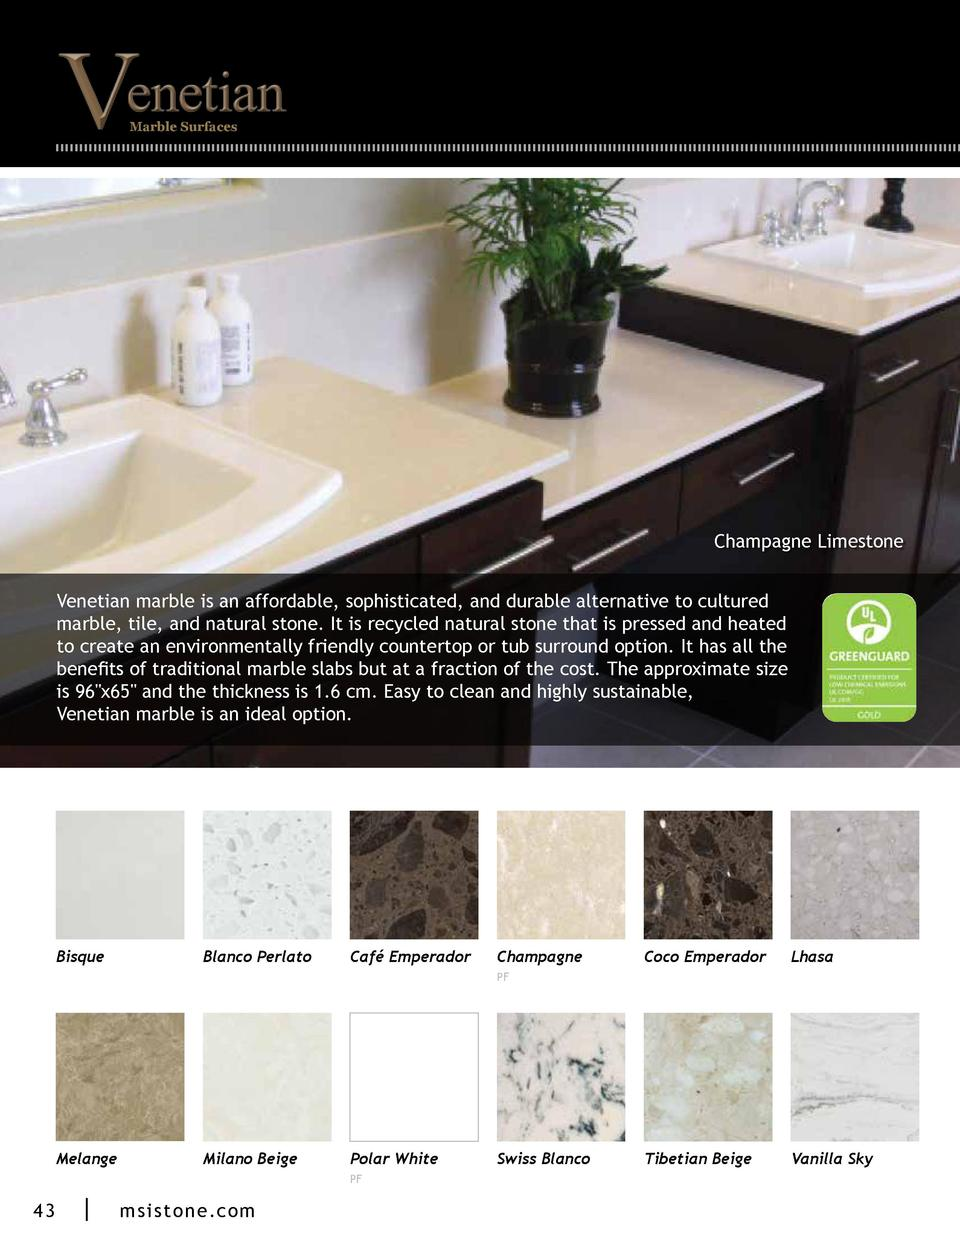 Marble Surfaces  Champagne Limestone Venetian marble is an affordable, sophisticated, and durable alternative to cultured ...